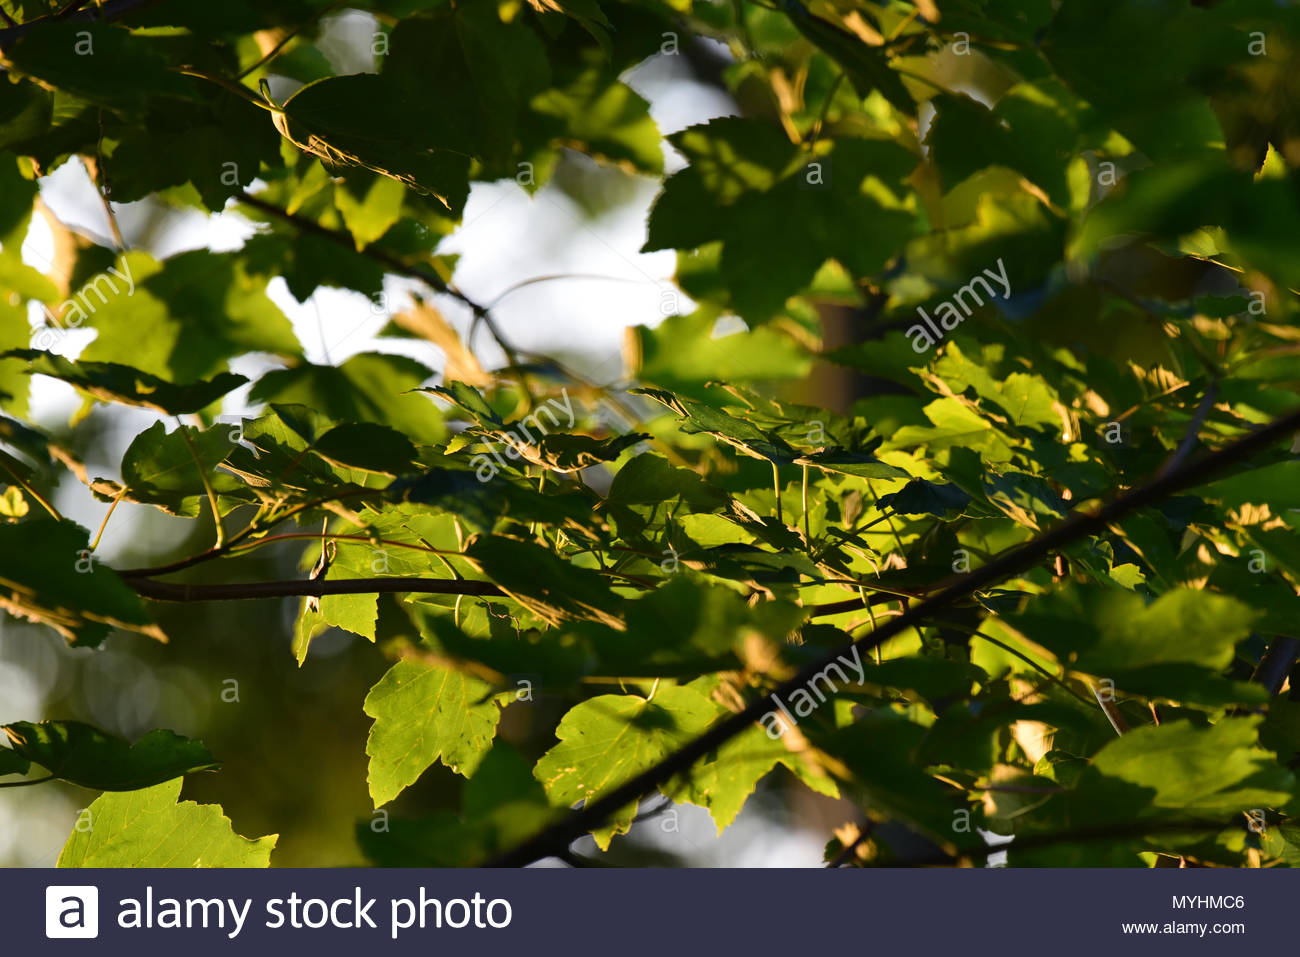 Close up shot of leaves on a tree in the evening sunshine. - Stock Image